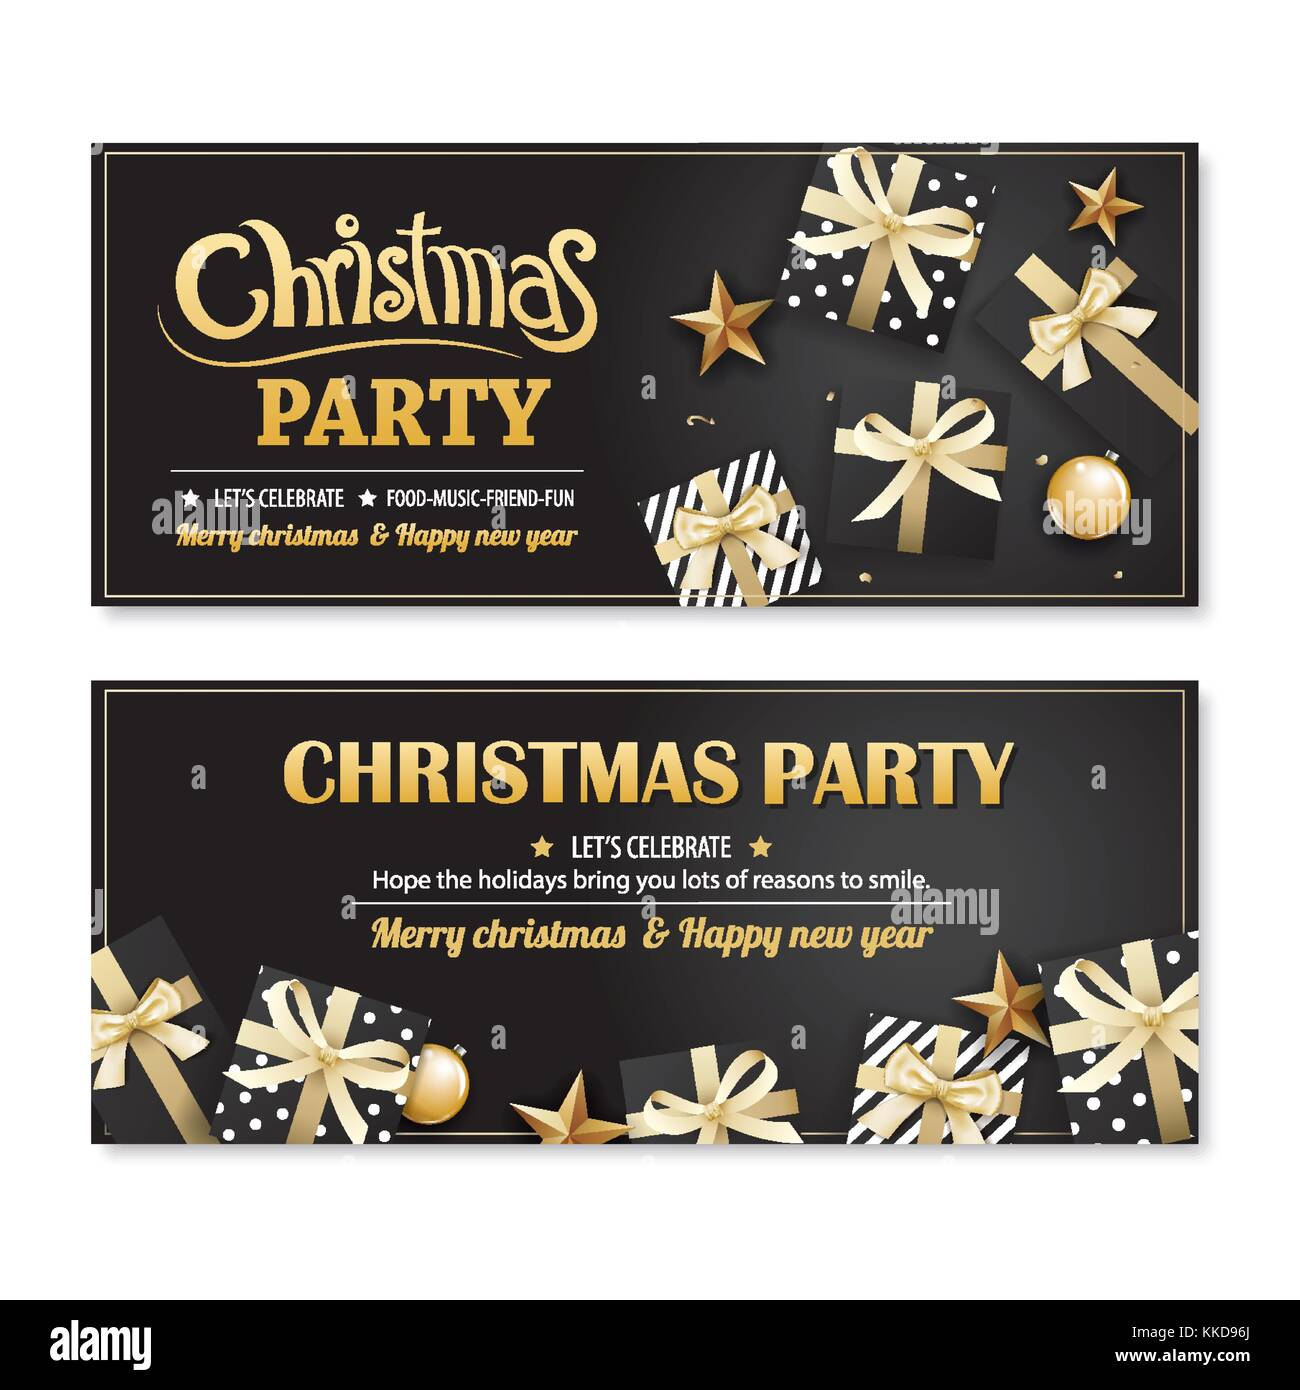 invitation merry christmas party poster banner and card design template on black background happy holiday and new year with gift boxes theme concept